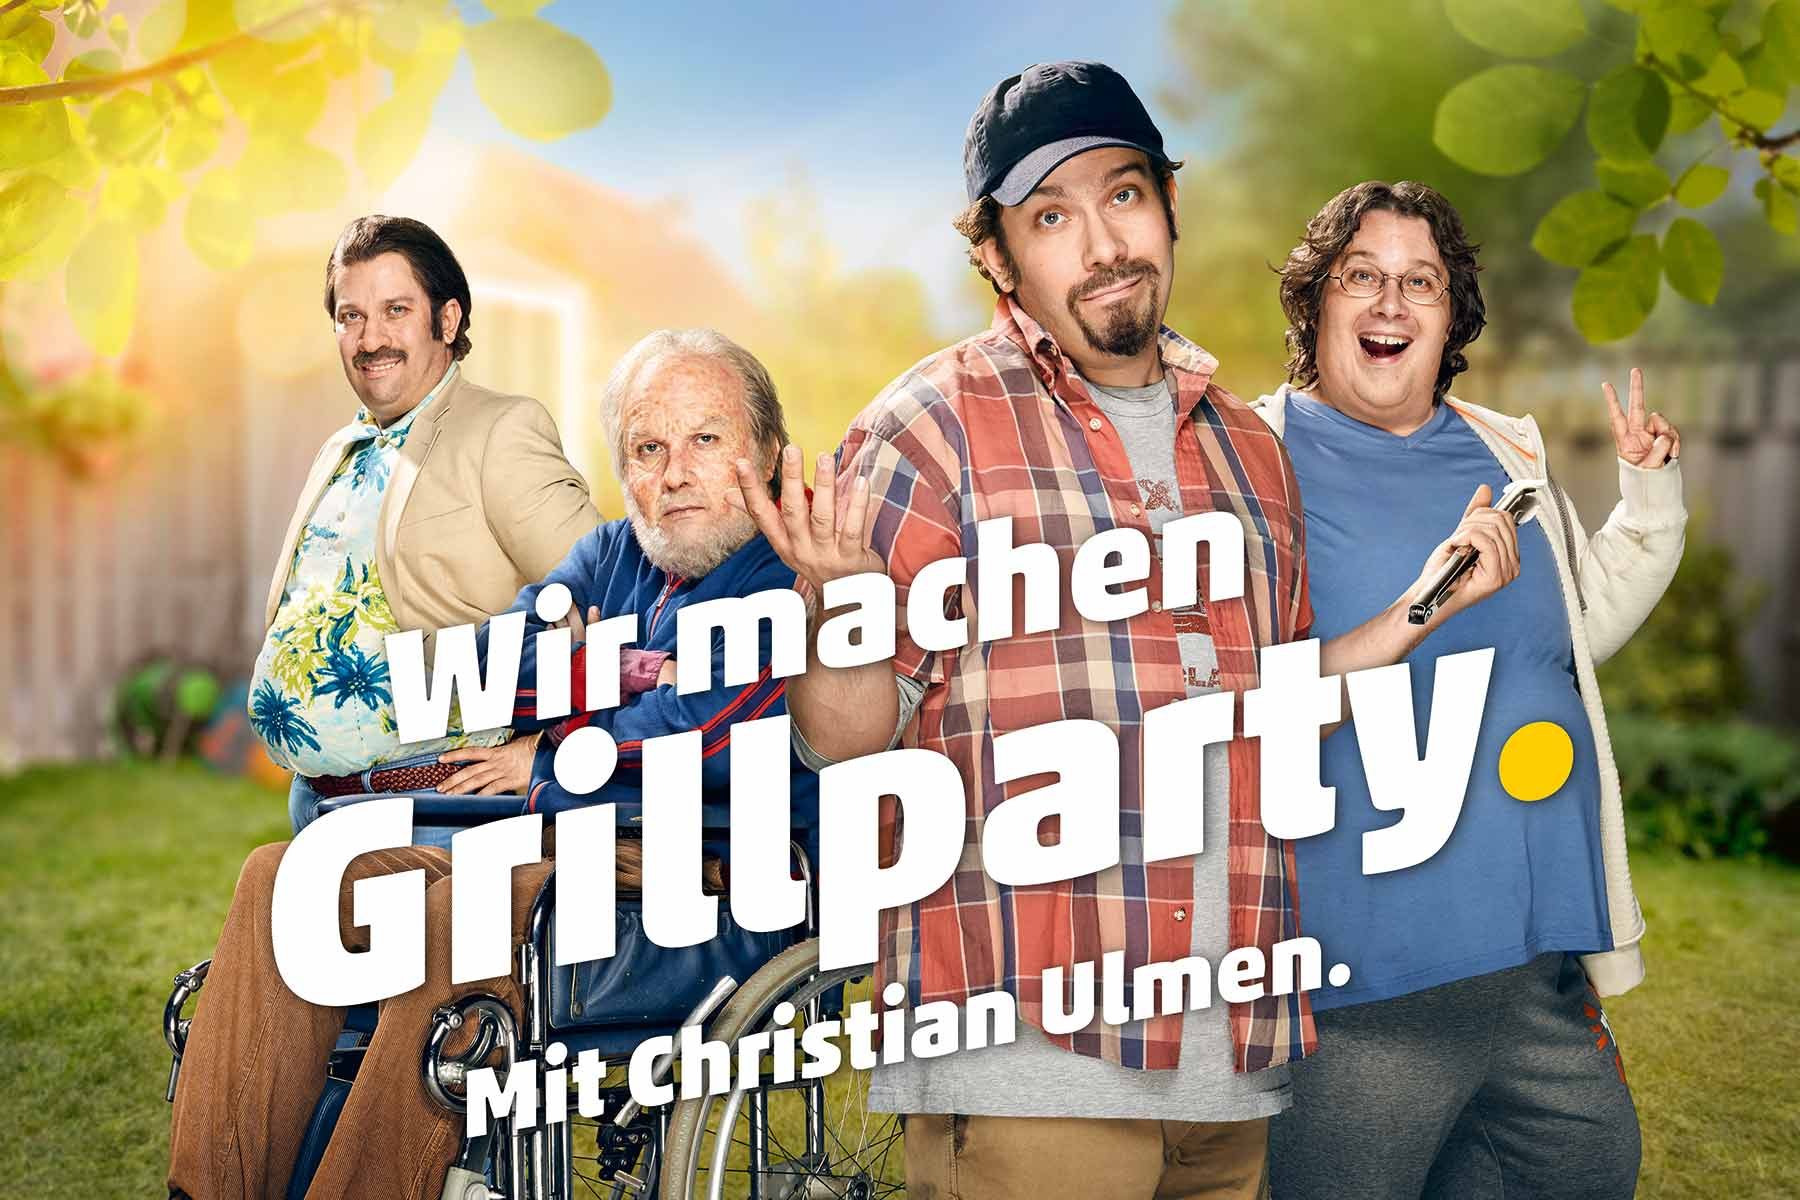 Christian Ulmen macht ein Follow Me Around PENNY-Grillparty-Christian-Ulmen_01